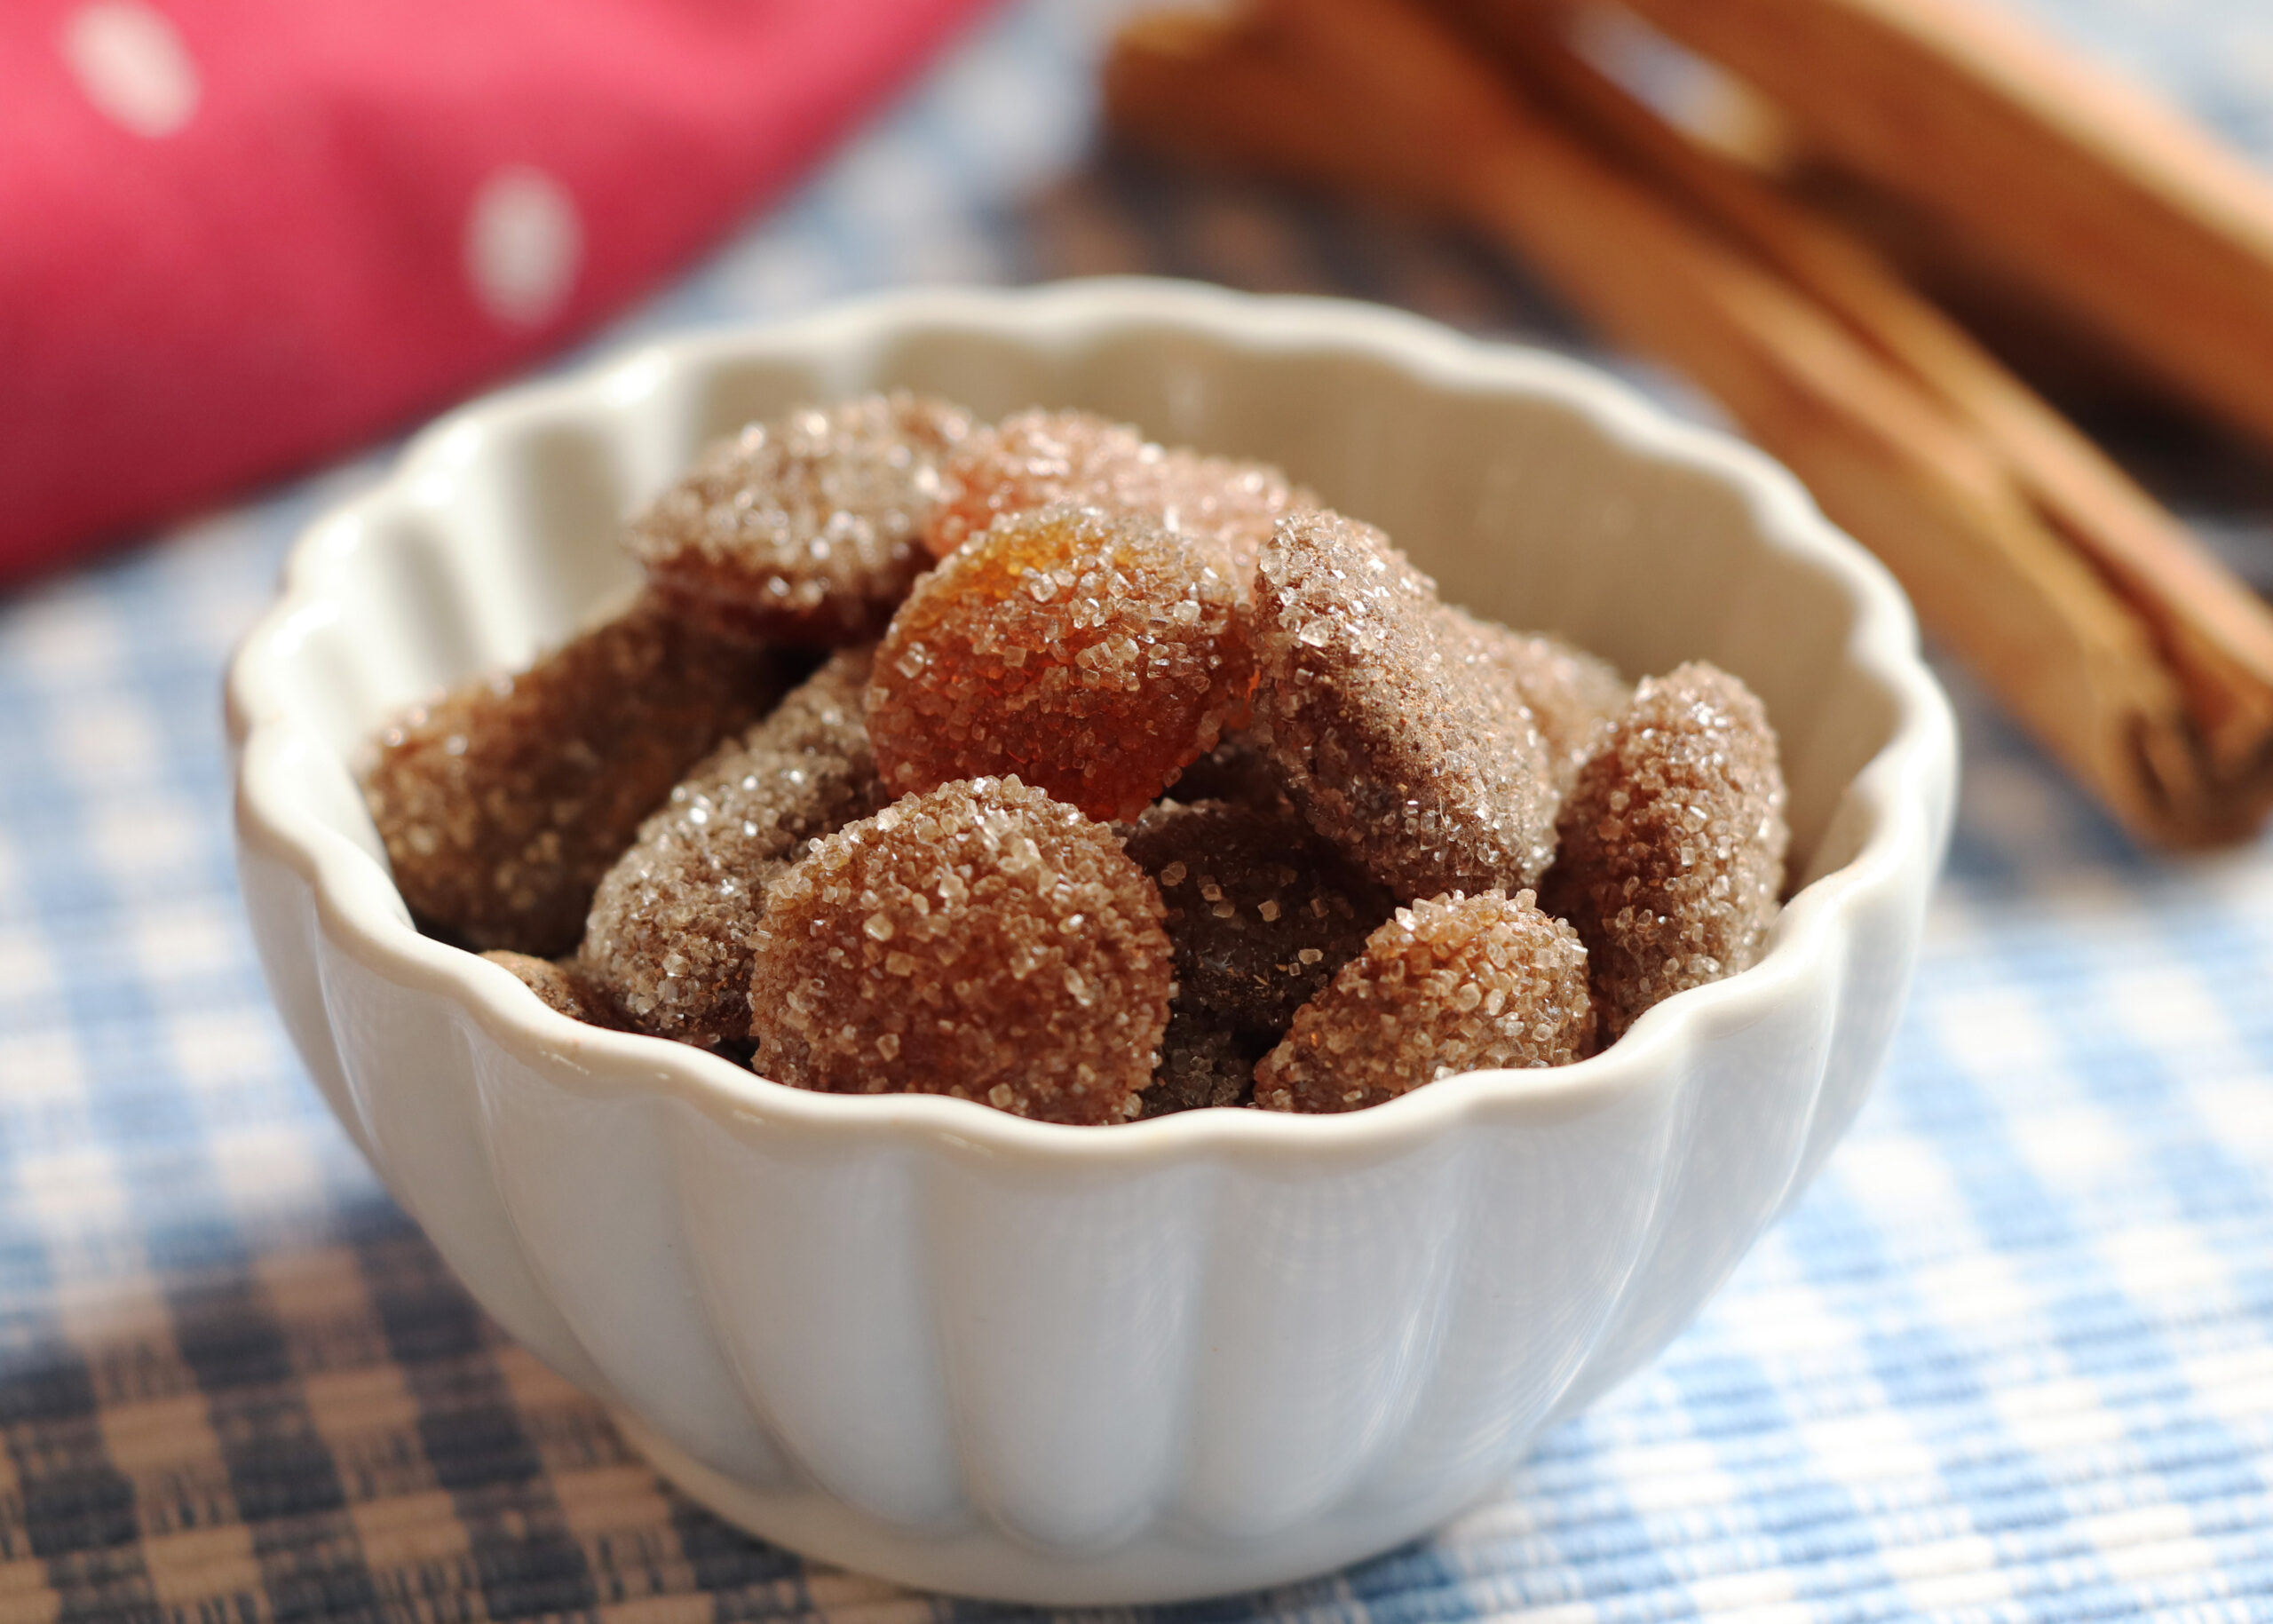 Soothing Homemade Cinnamon and Honey Cough Drops